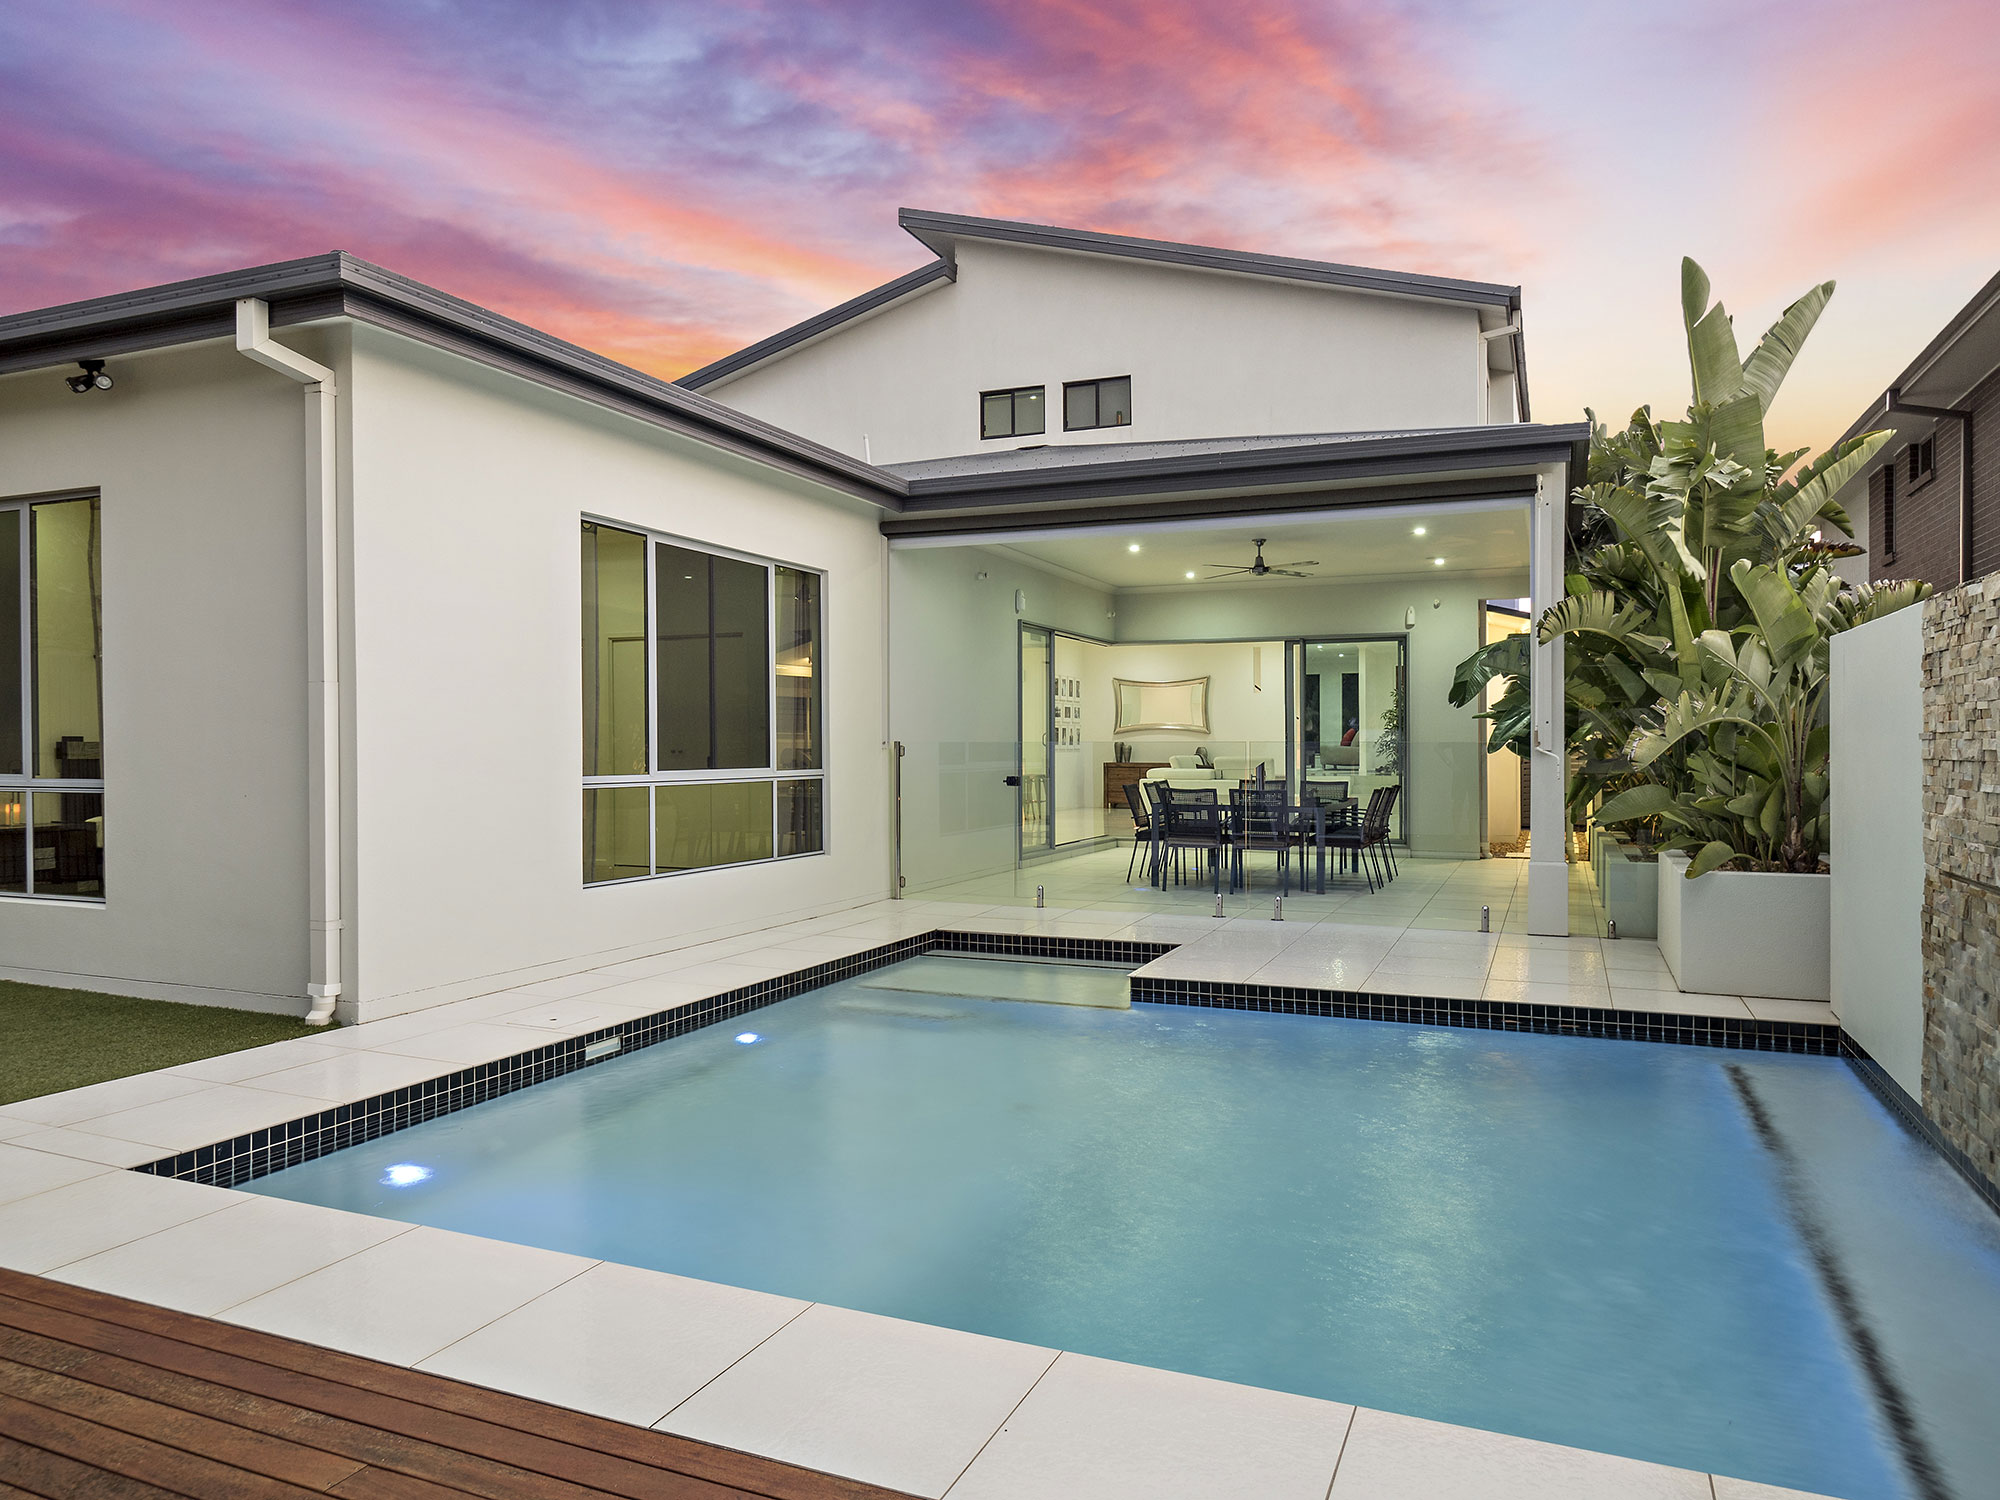 61 Shuttleworth real estate photography rear pool area - Phil Savory